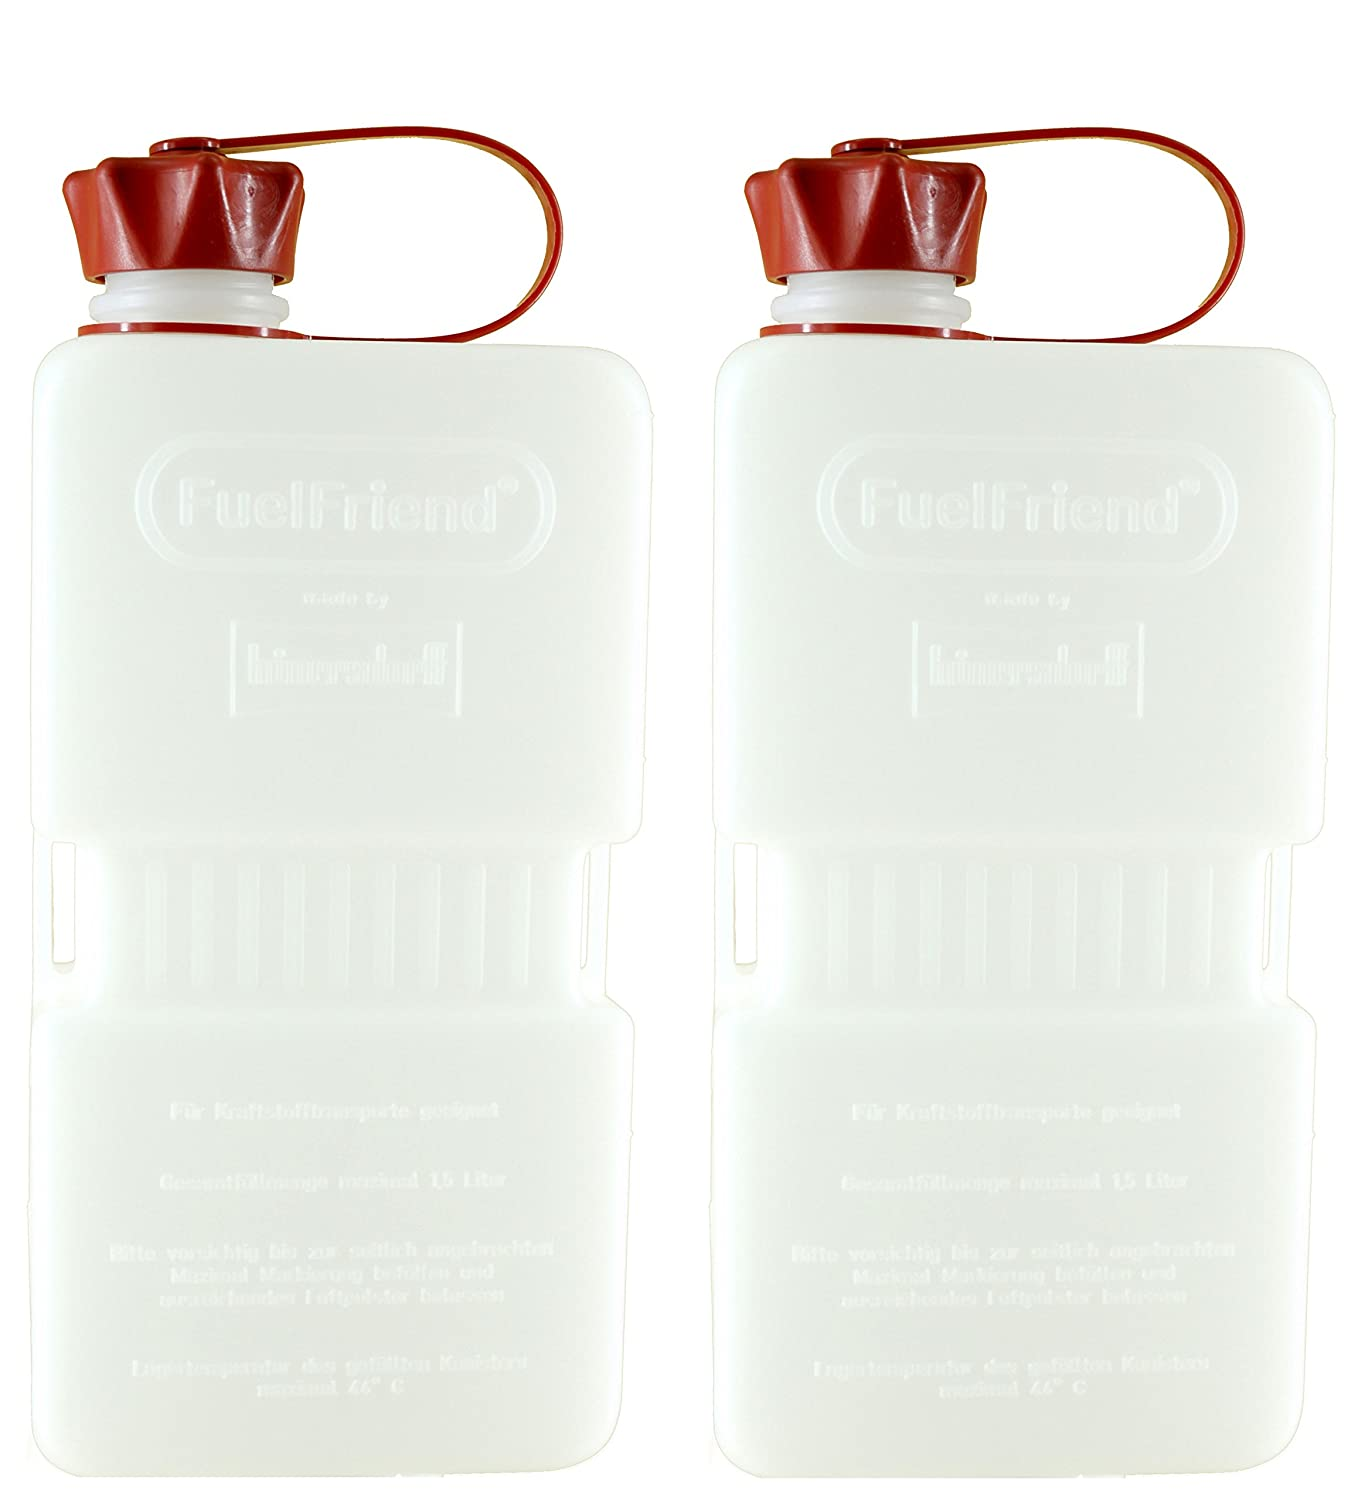 FuelFriend® -PLUS CLEAR - Jerrycan 1.5 liters - 2 pieces for a special price hünersdorff 2FFPC15